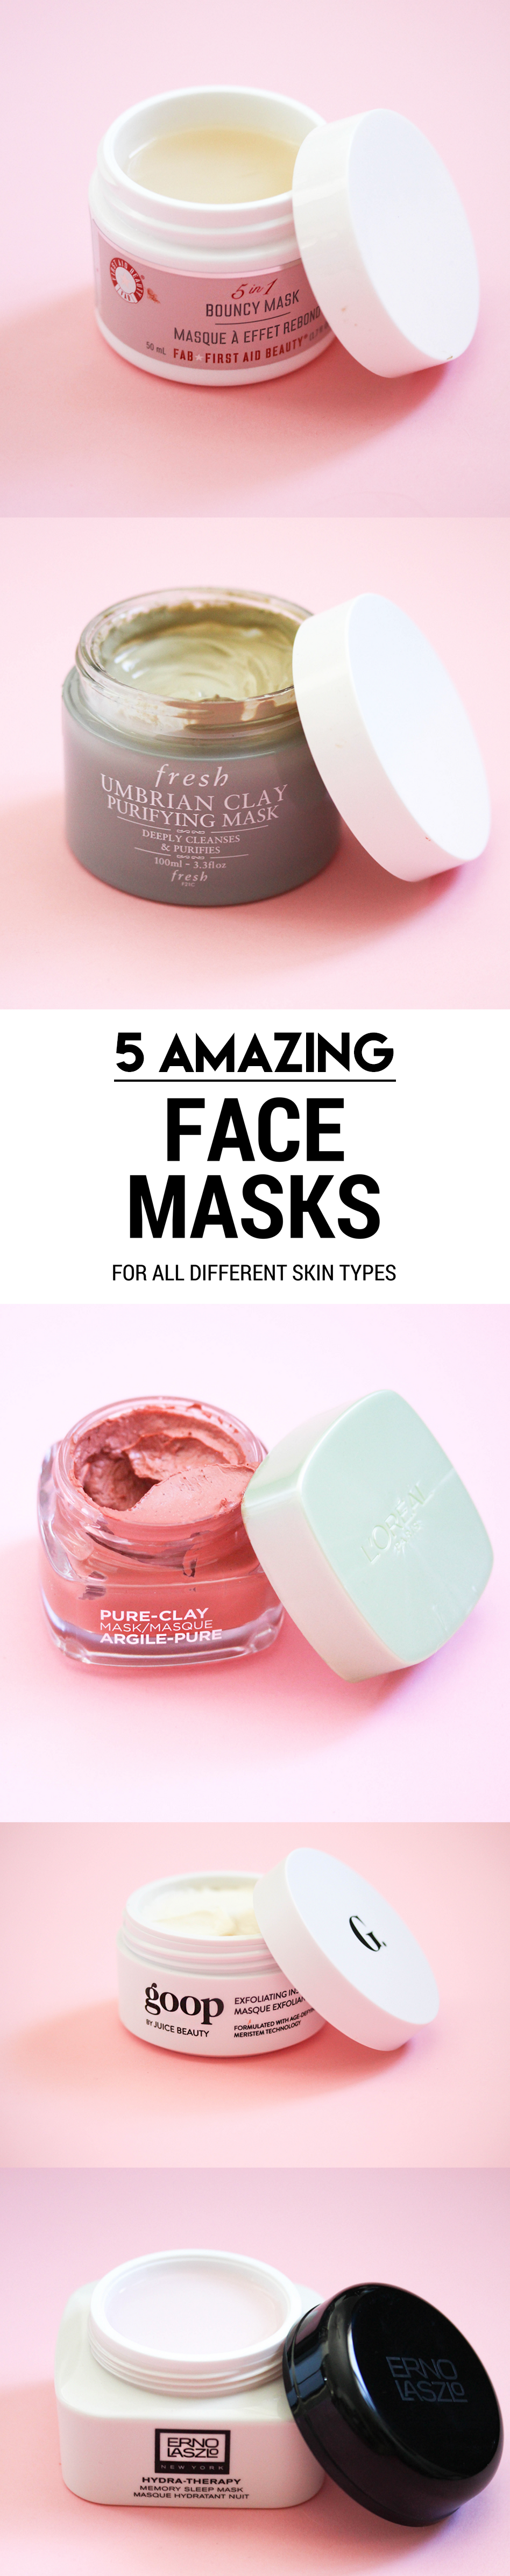 Five Face Masks You Need To Try - Money Can Buy Lipstick